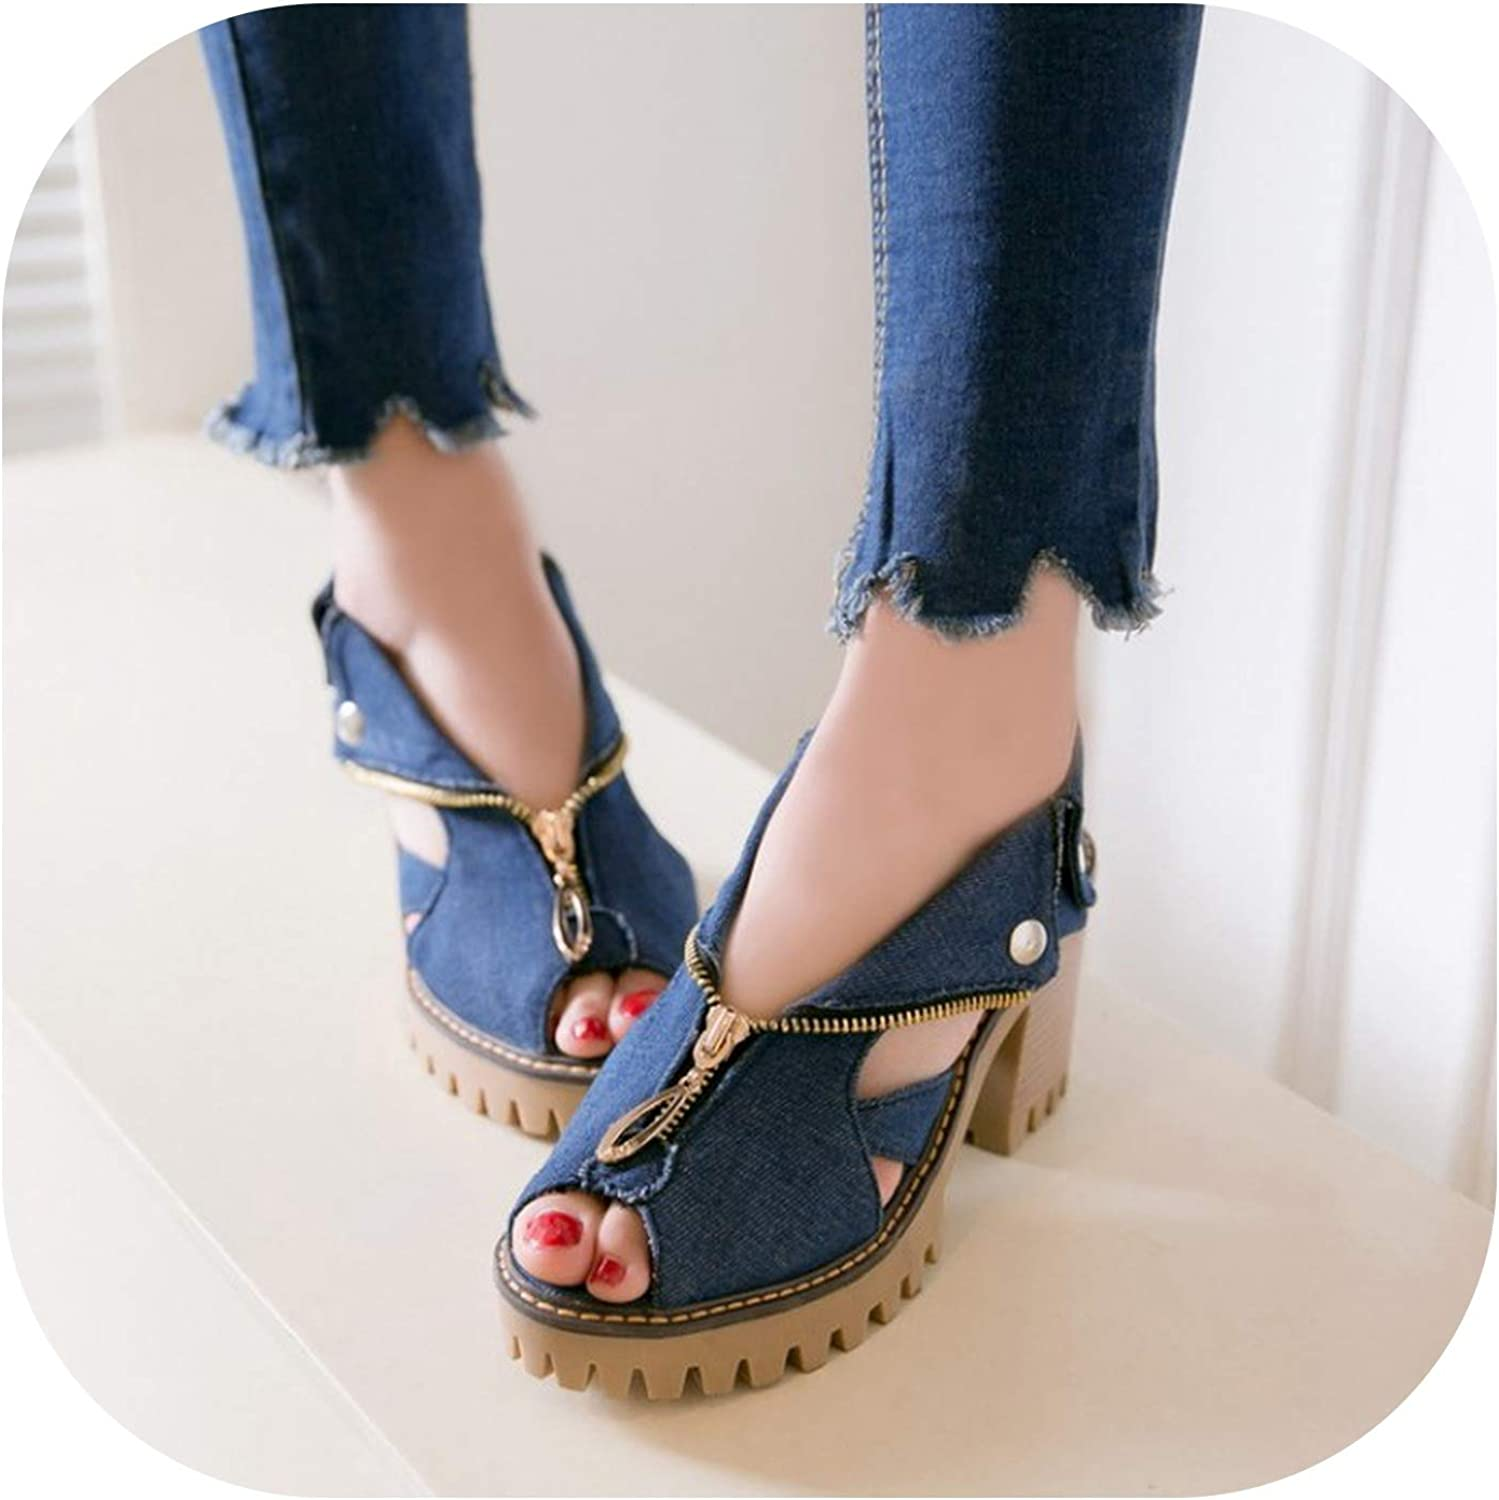 The of Denim with Fish Mouth Women Sandals high Heels Women's Zipper Large Size Non Slip shoes